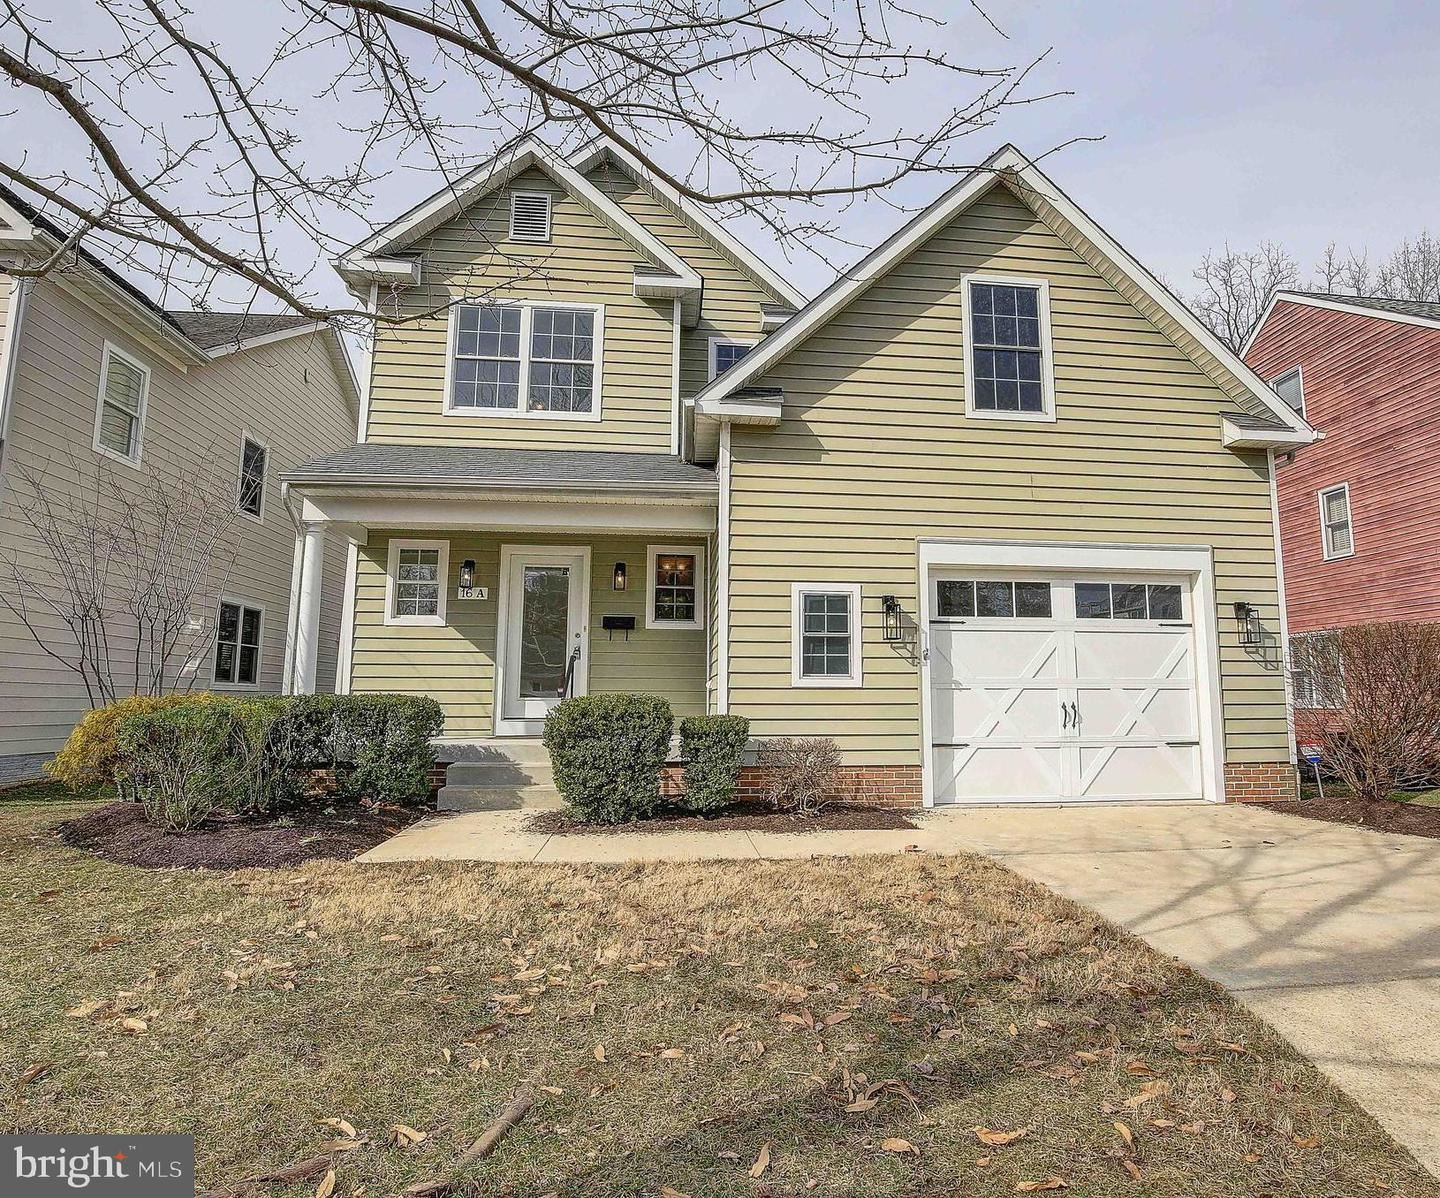 16-A S CHERRY GROVE AVE, Annapolis, MD 21401 - MLS#: MDAA458926